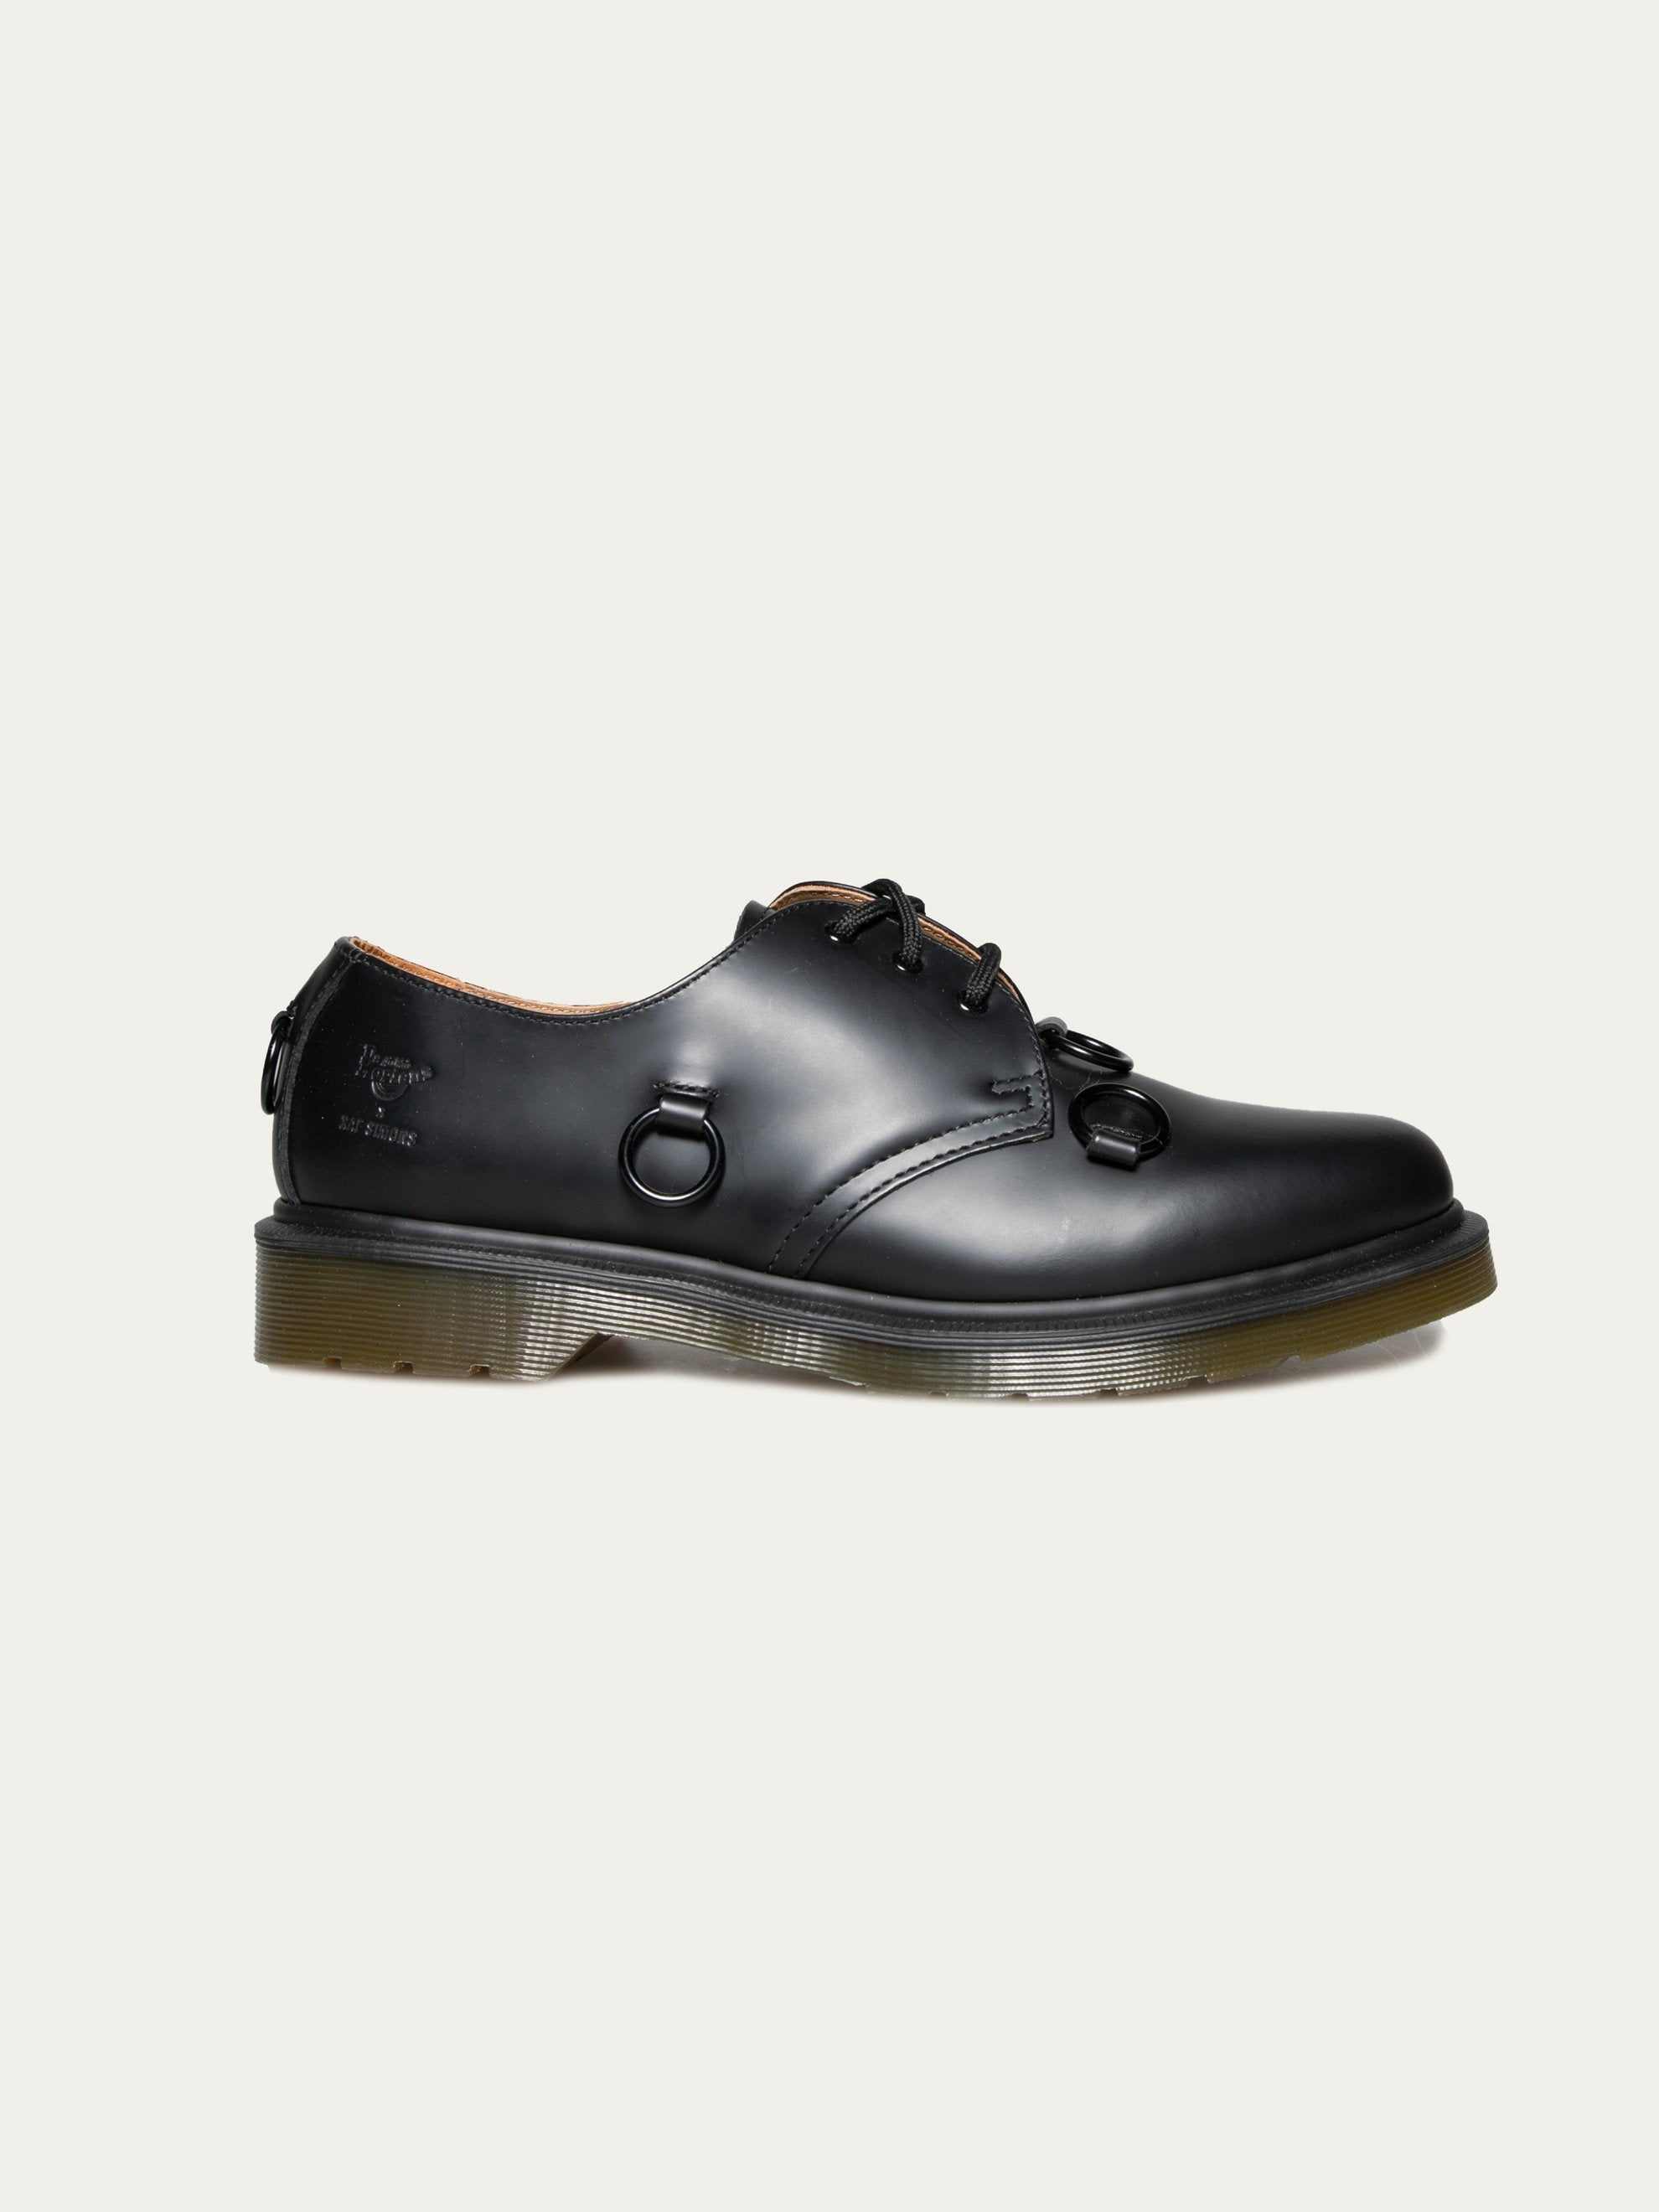 Black Raf Simons x Dr. Martens Low Shoe With Nickel Rings 1